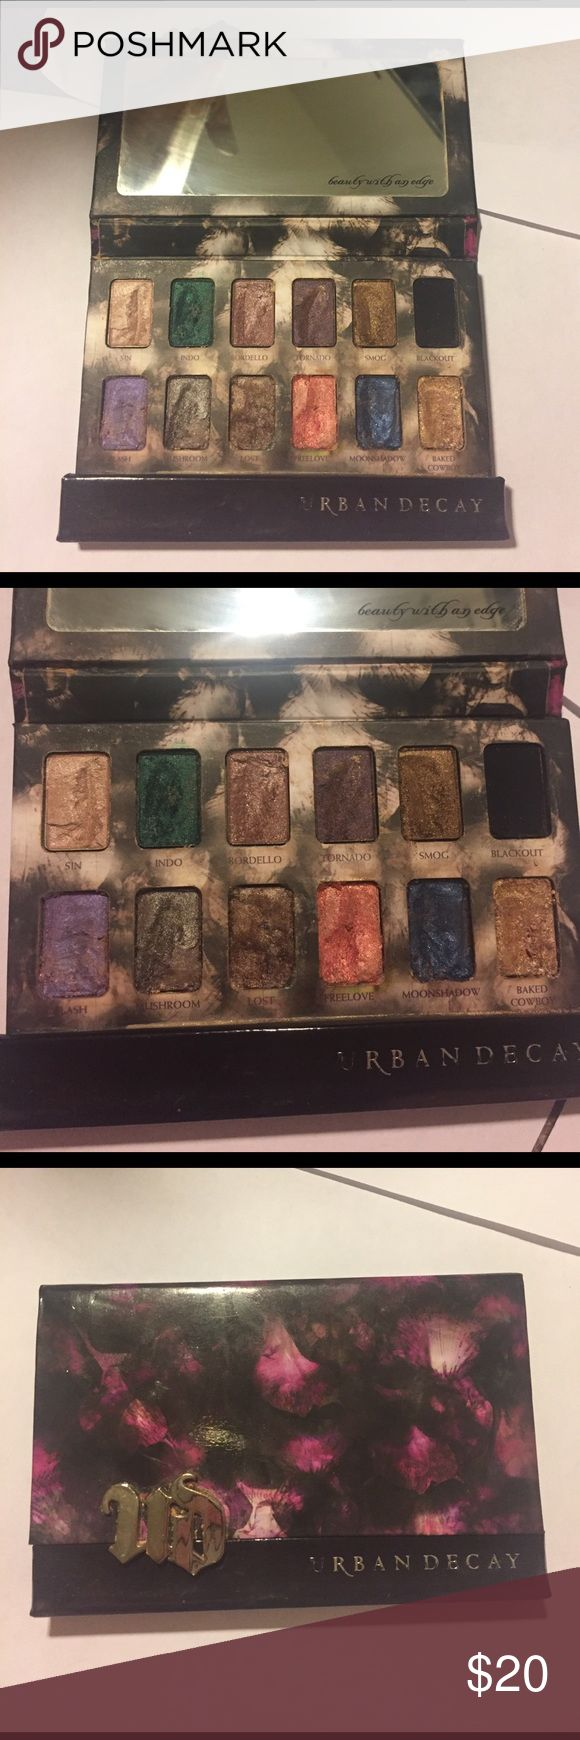 Urban decay shadow box eye shadow palette Pre owned authentic urban decay shadow box there is a lot of product left and being priced to reflect the condition. Smoke and pet free home. No trades Urban Decay Makeup Eyeshadow